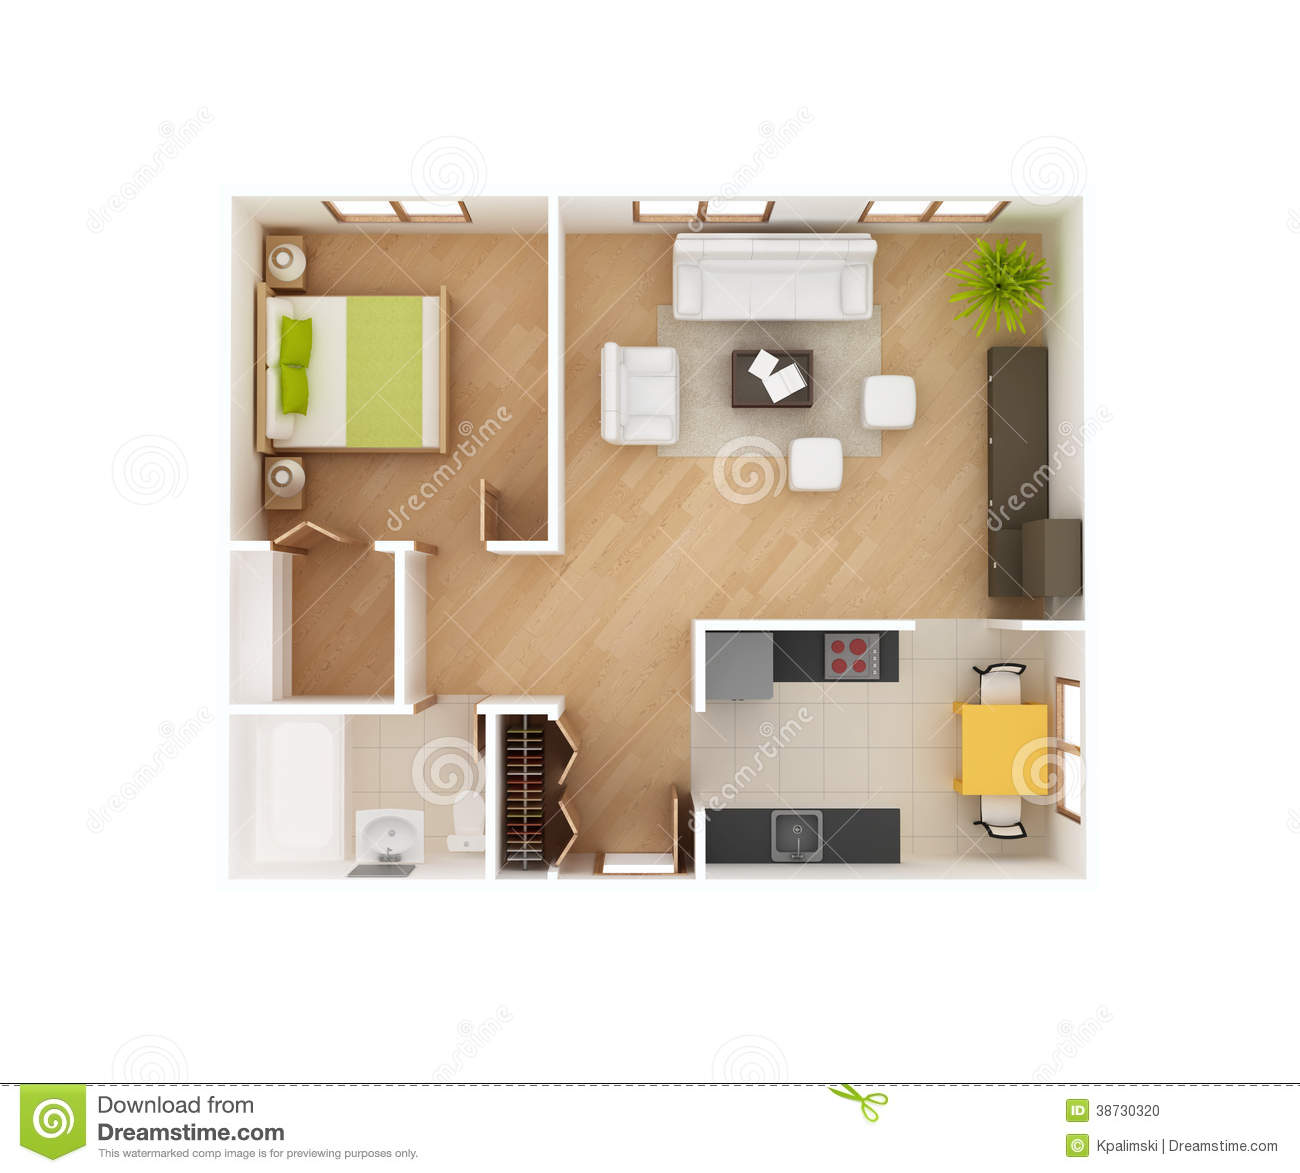 blueprint 3d house & plan stock photo - image: 53654464